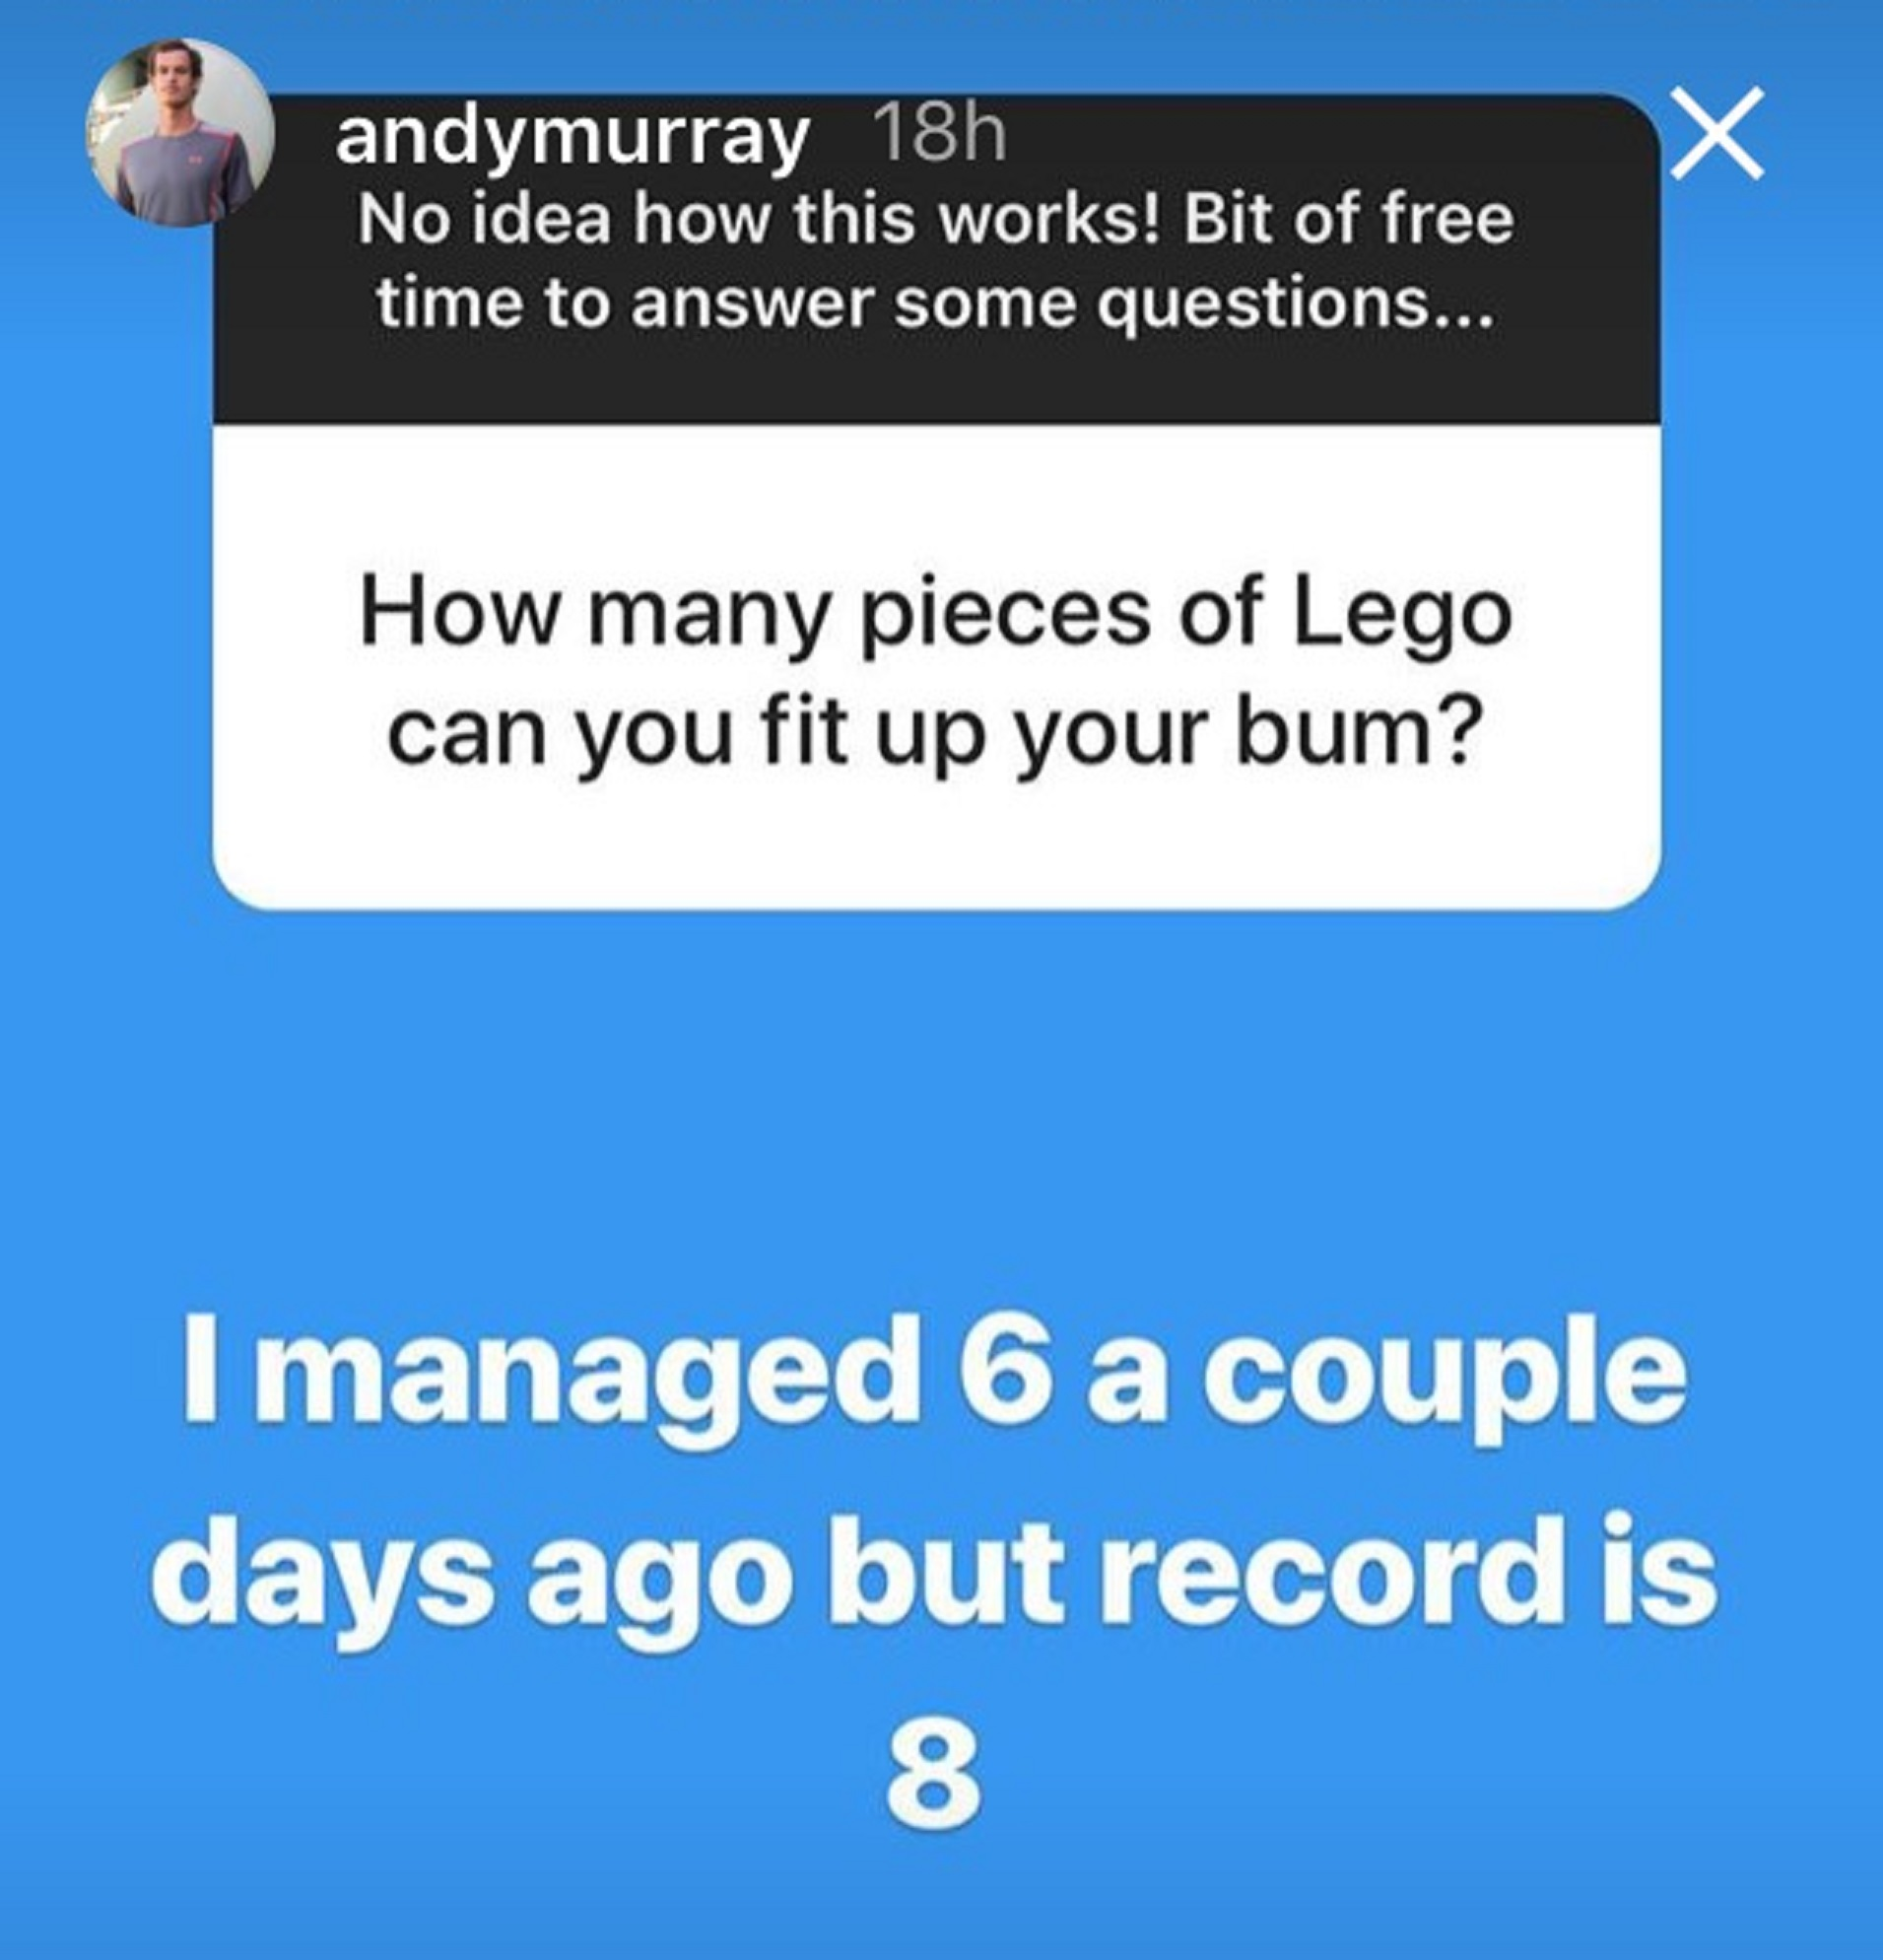 Andy Murray answers questions on his Instagram Story